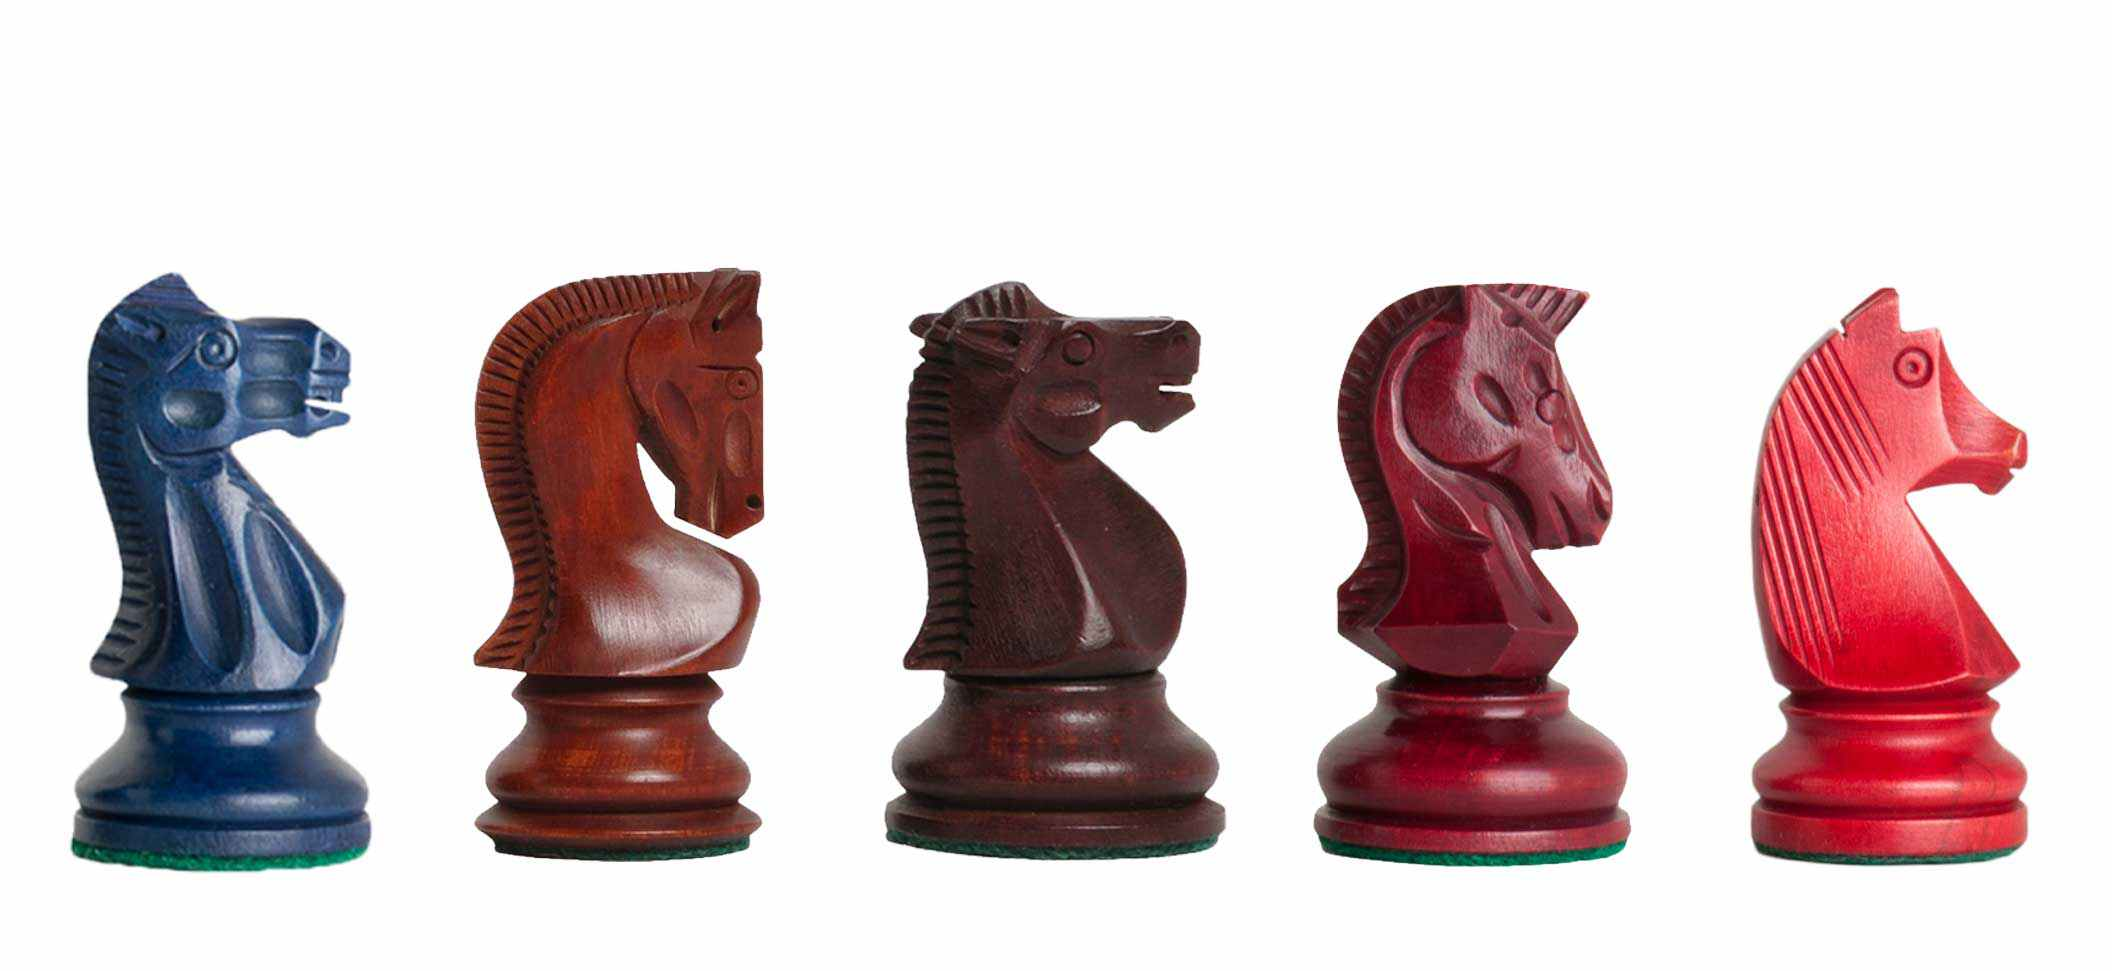 The Gilded Chess Set Collection